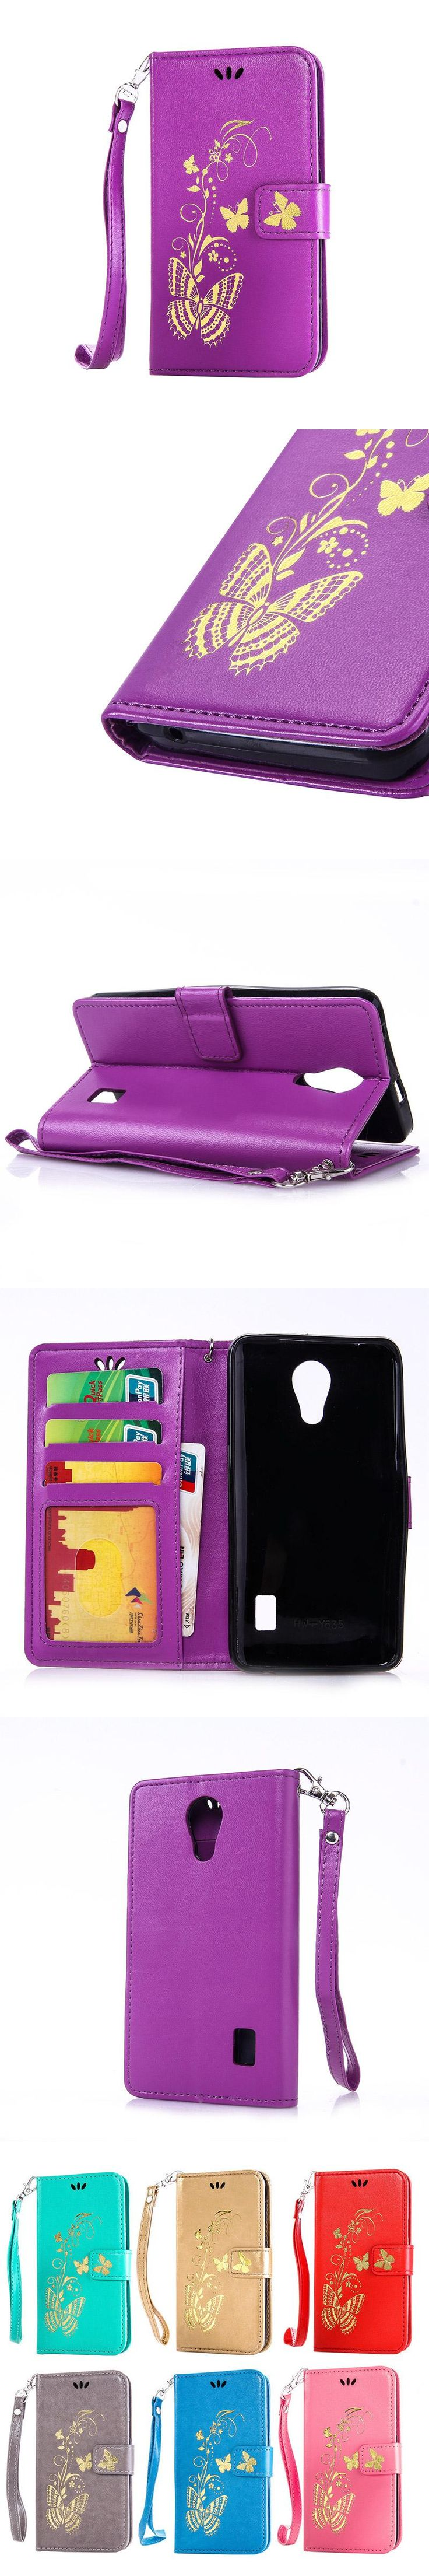 Golden Butterfly PU Leather Card slot Wallet Flip Case For Huawei Y320 Y360 Y550 Y560 Y625 Y635 Y5C Y541 Y6 Y3 Y5 II Pro B13